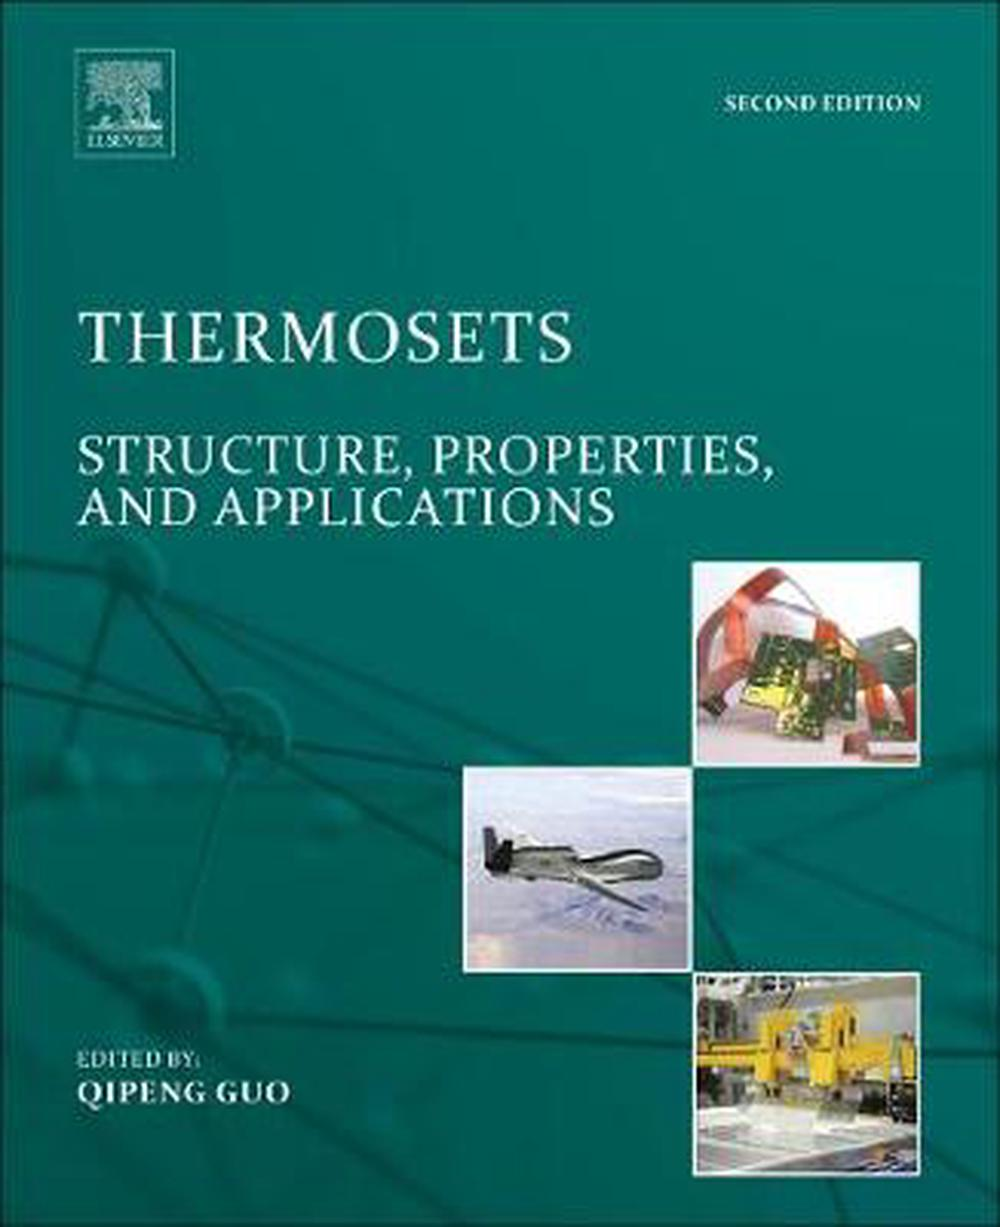 Thermosets: Structure, Properties, and Applications by Qipeng Guo Hardcover Book